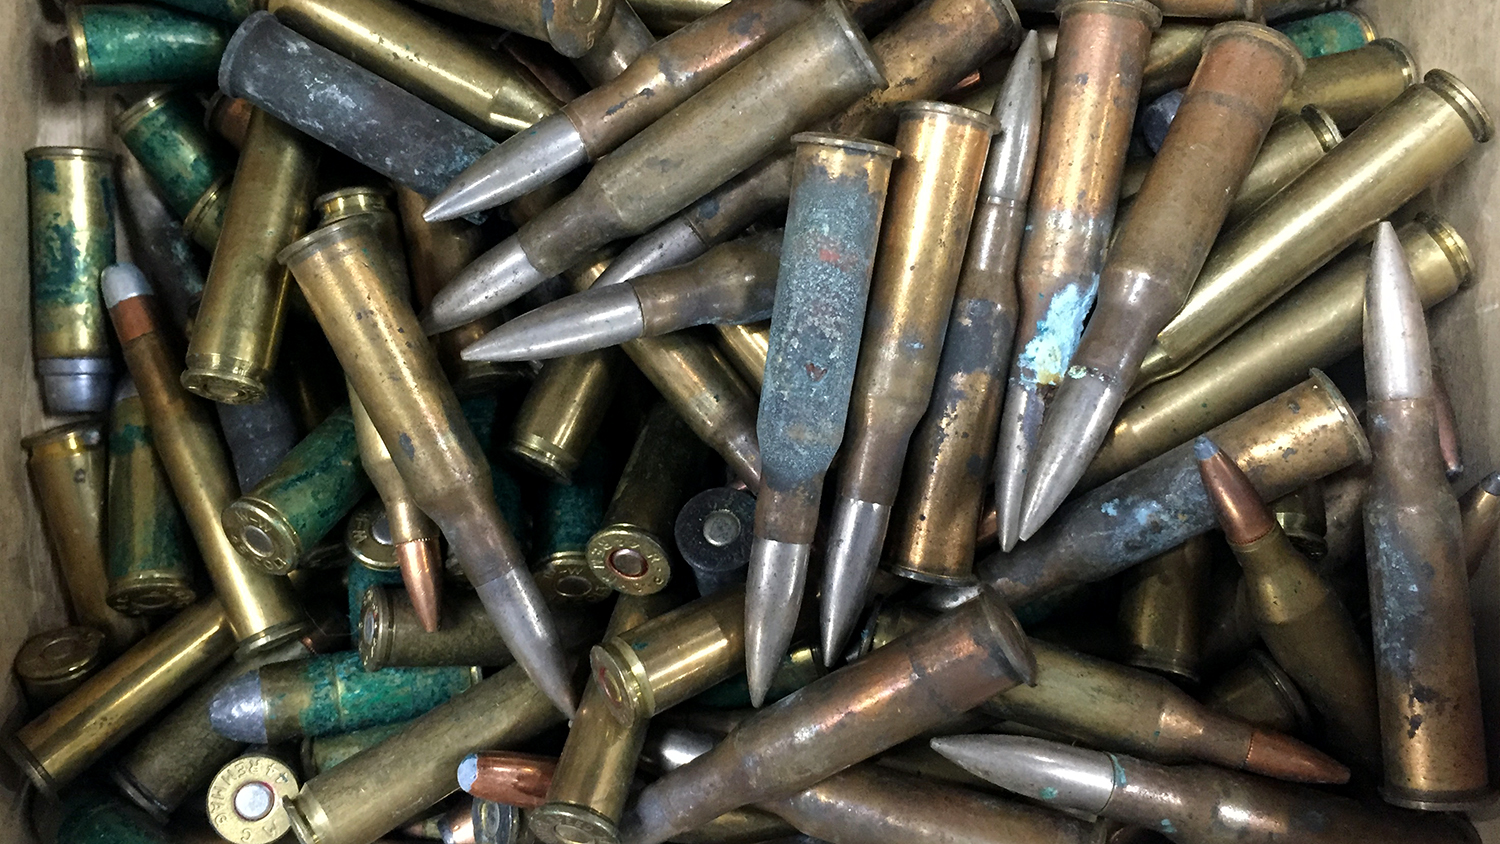 How Do You Get Rid Of Bad Ammunition?